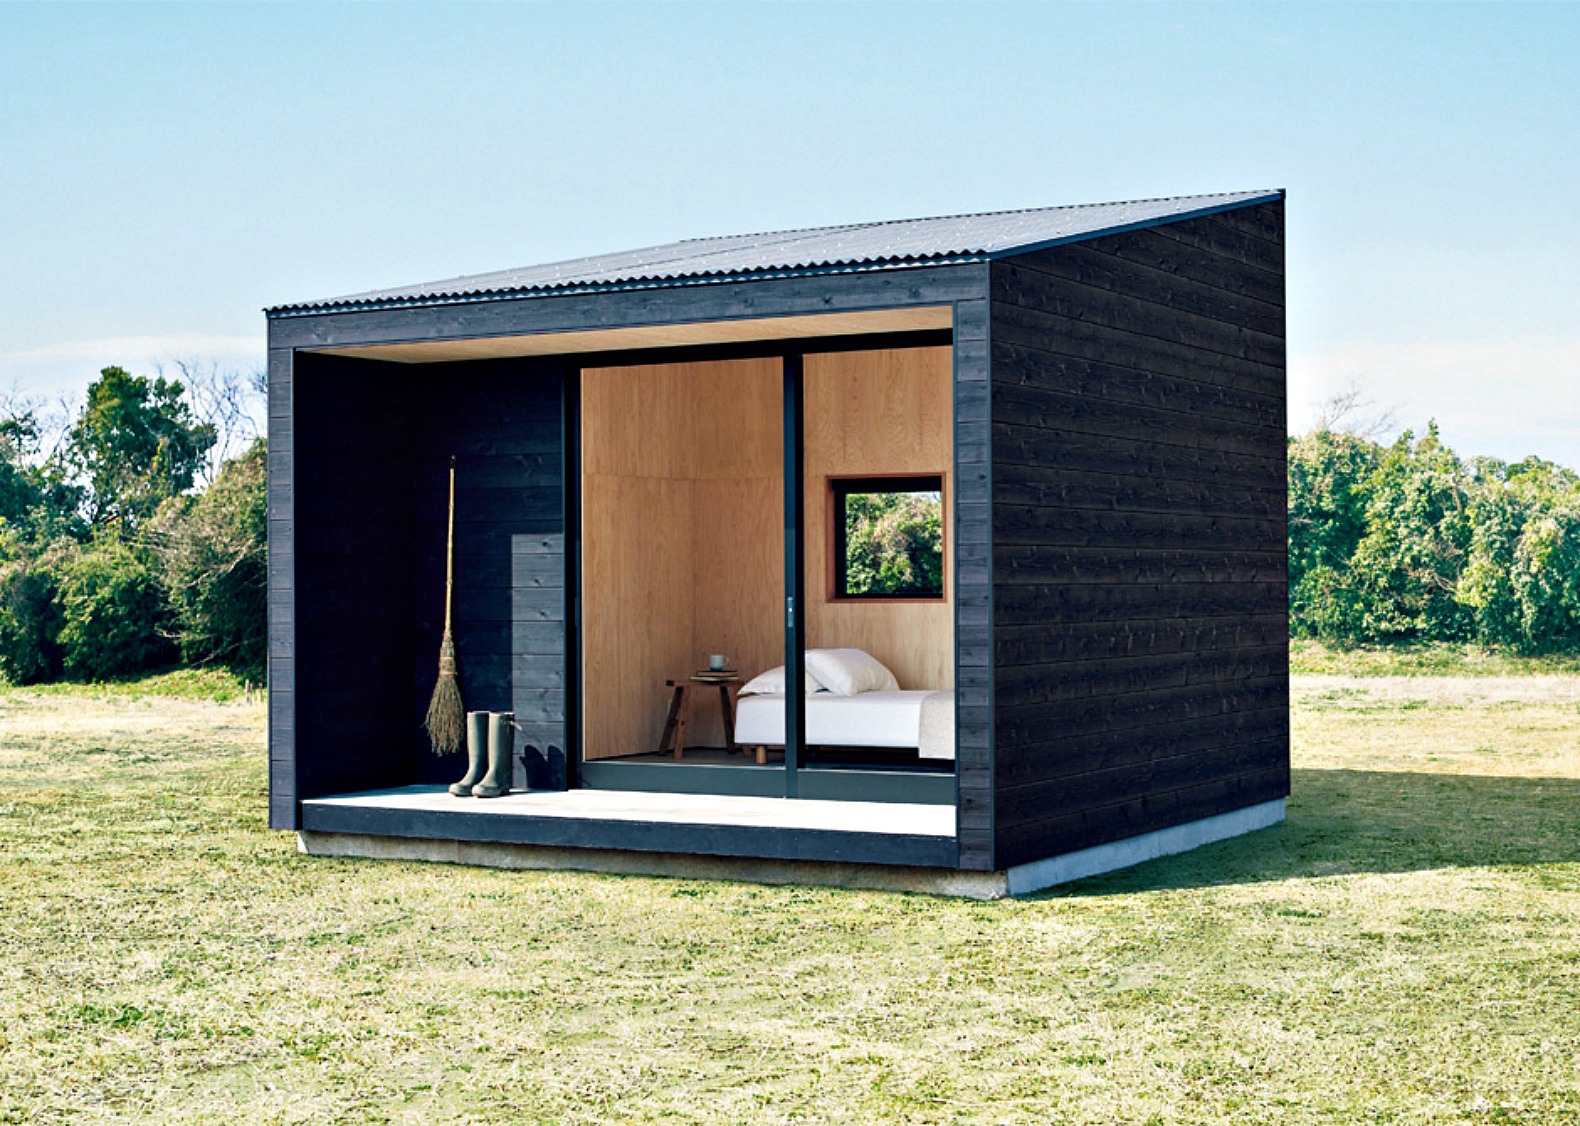 Tiny house inhabitat green design innovation for Building a little house